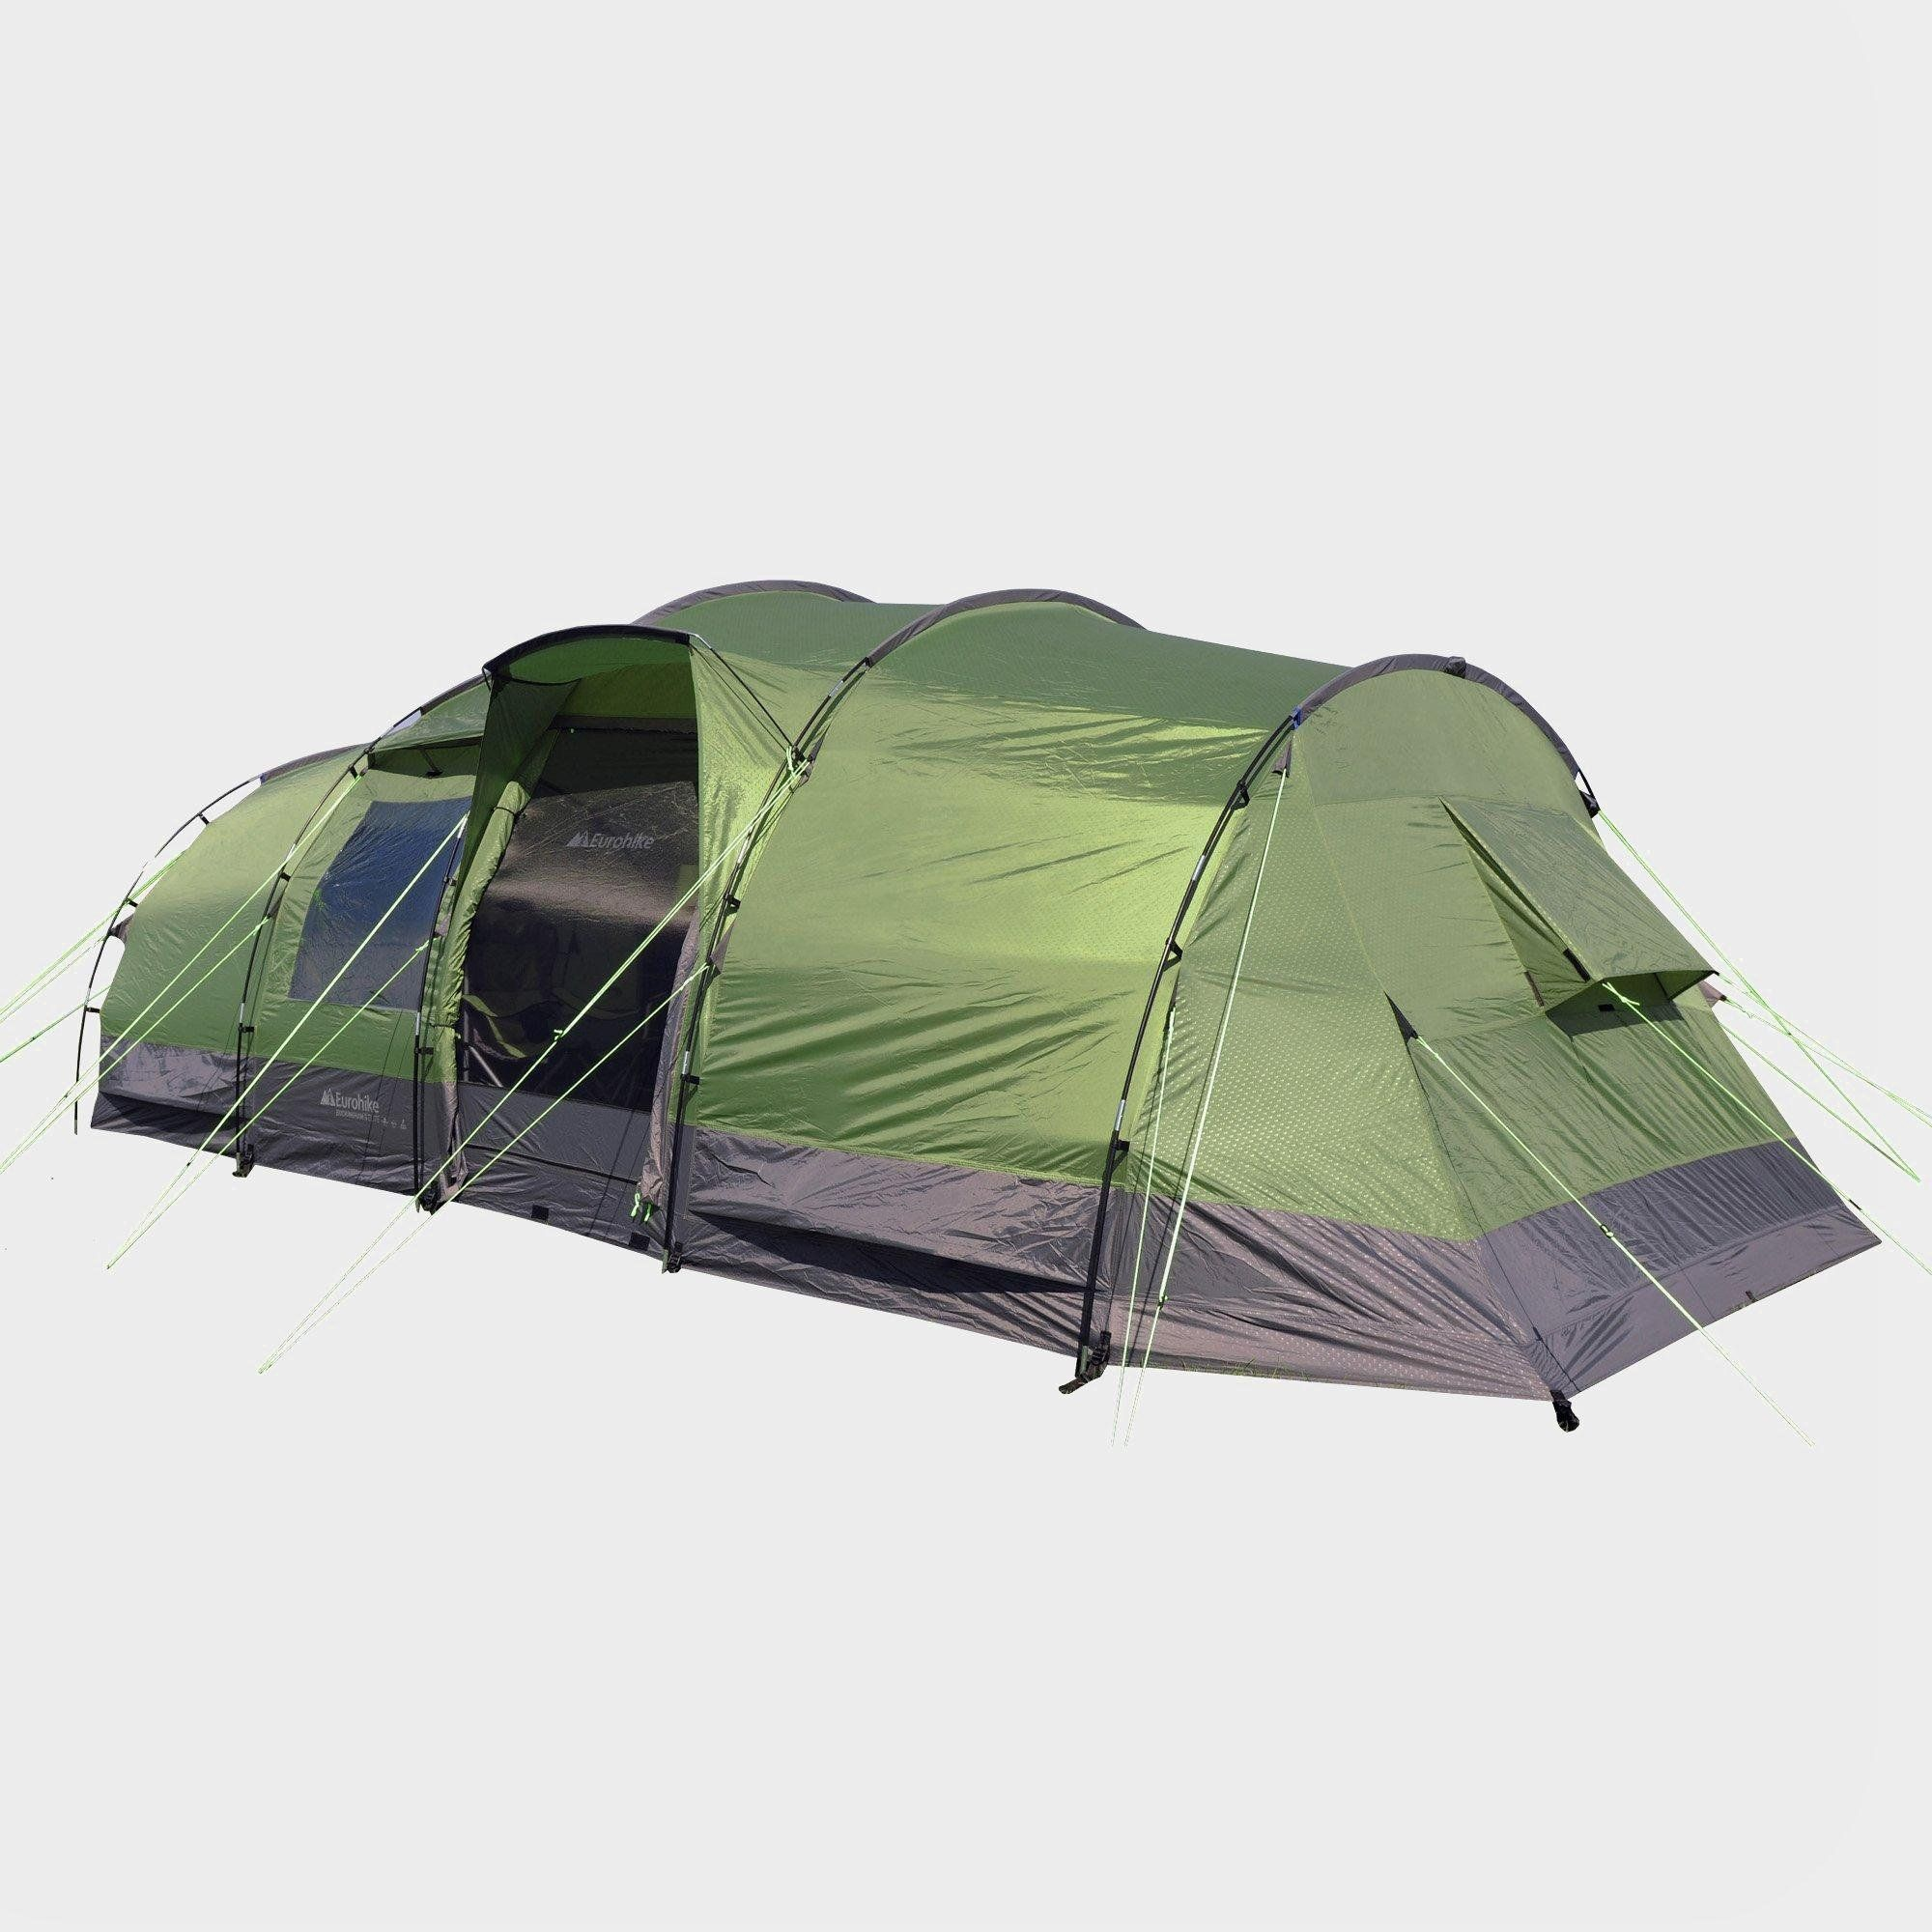 EUROHIKE Buckingham Elite 8 Man Family Tent